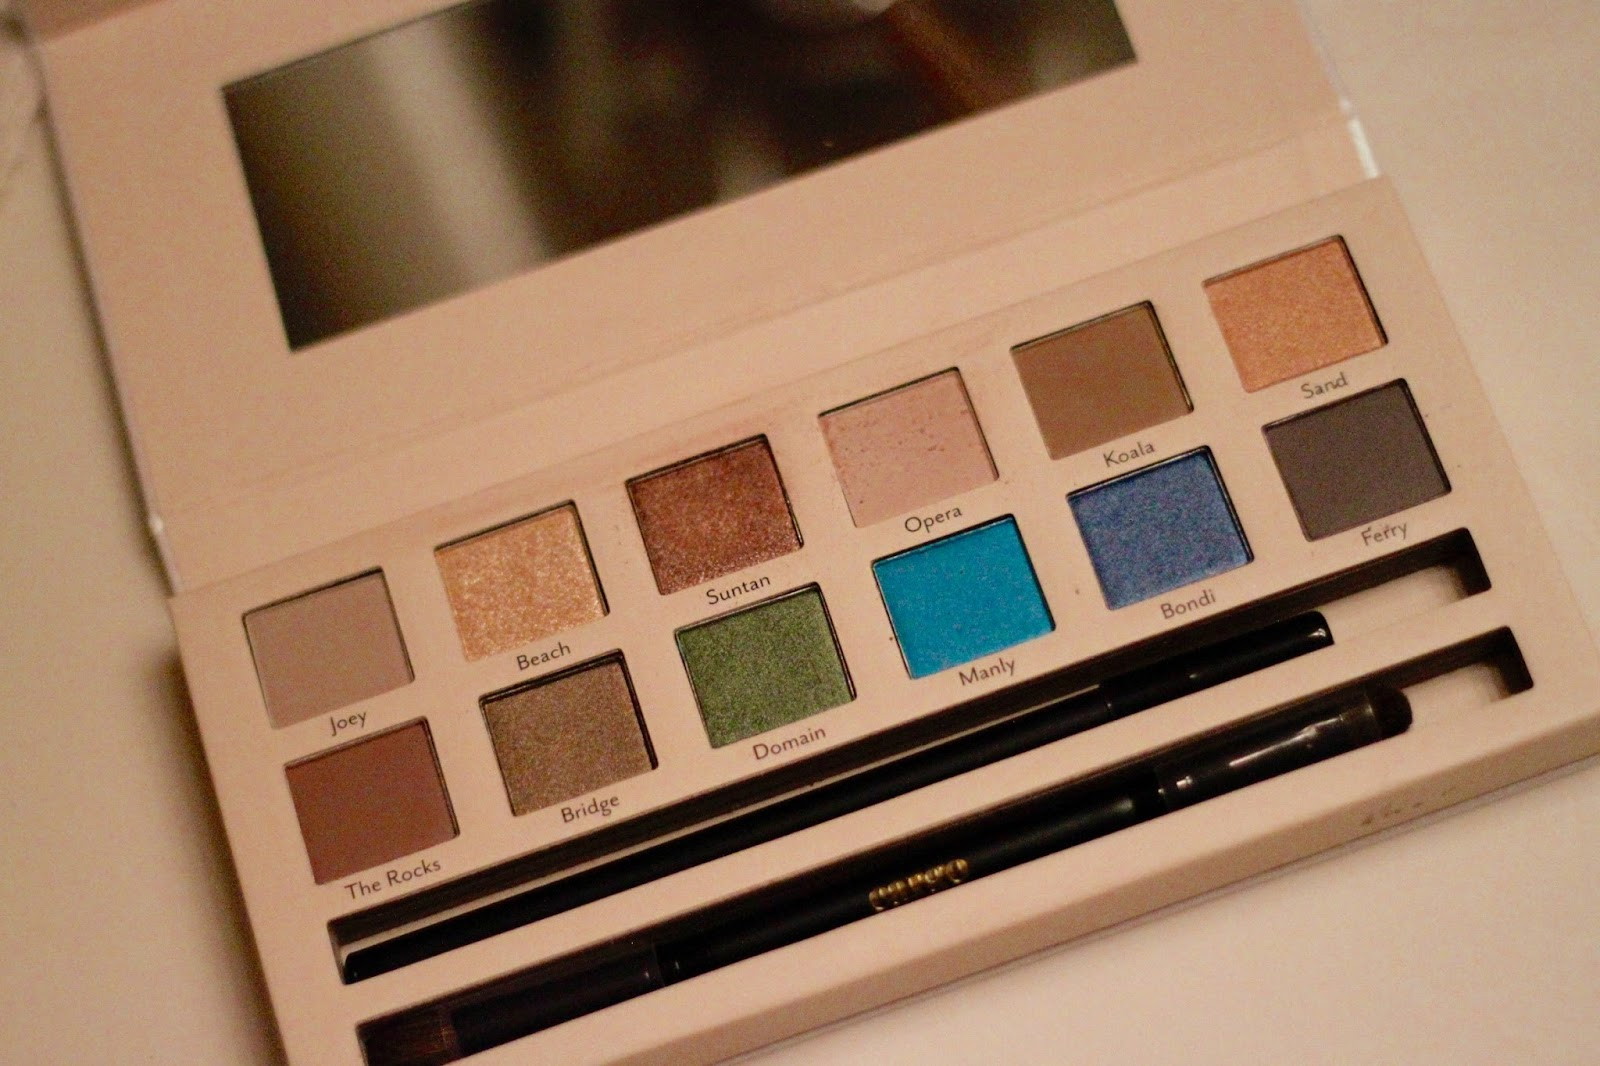 Review of the Land Down Under palette